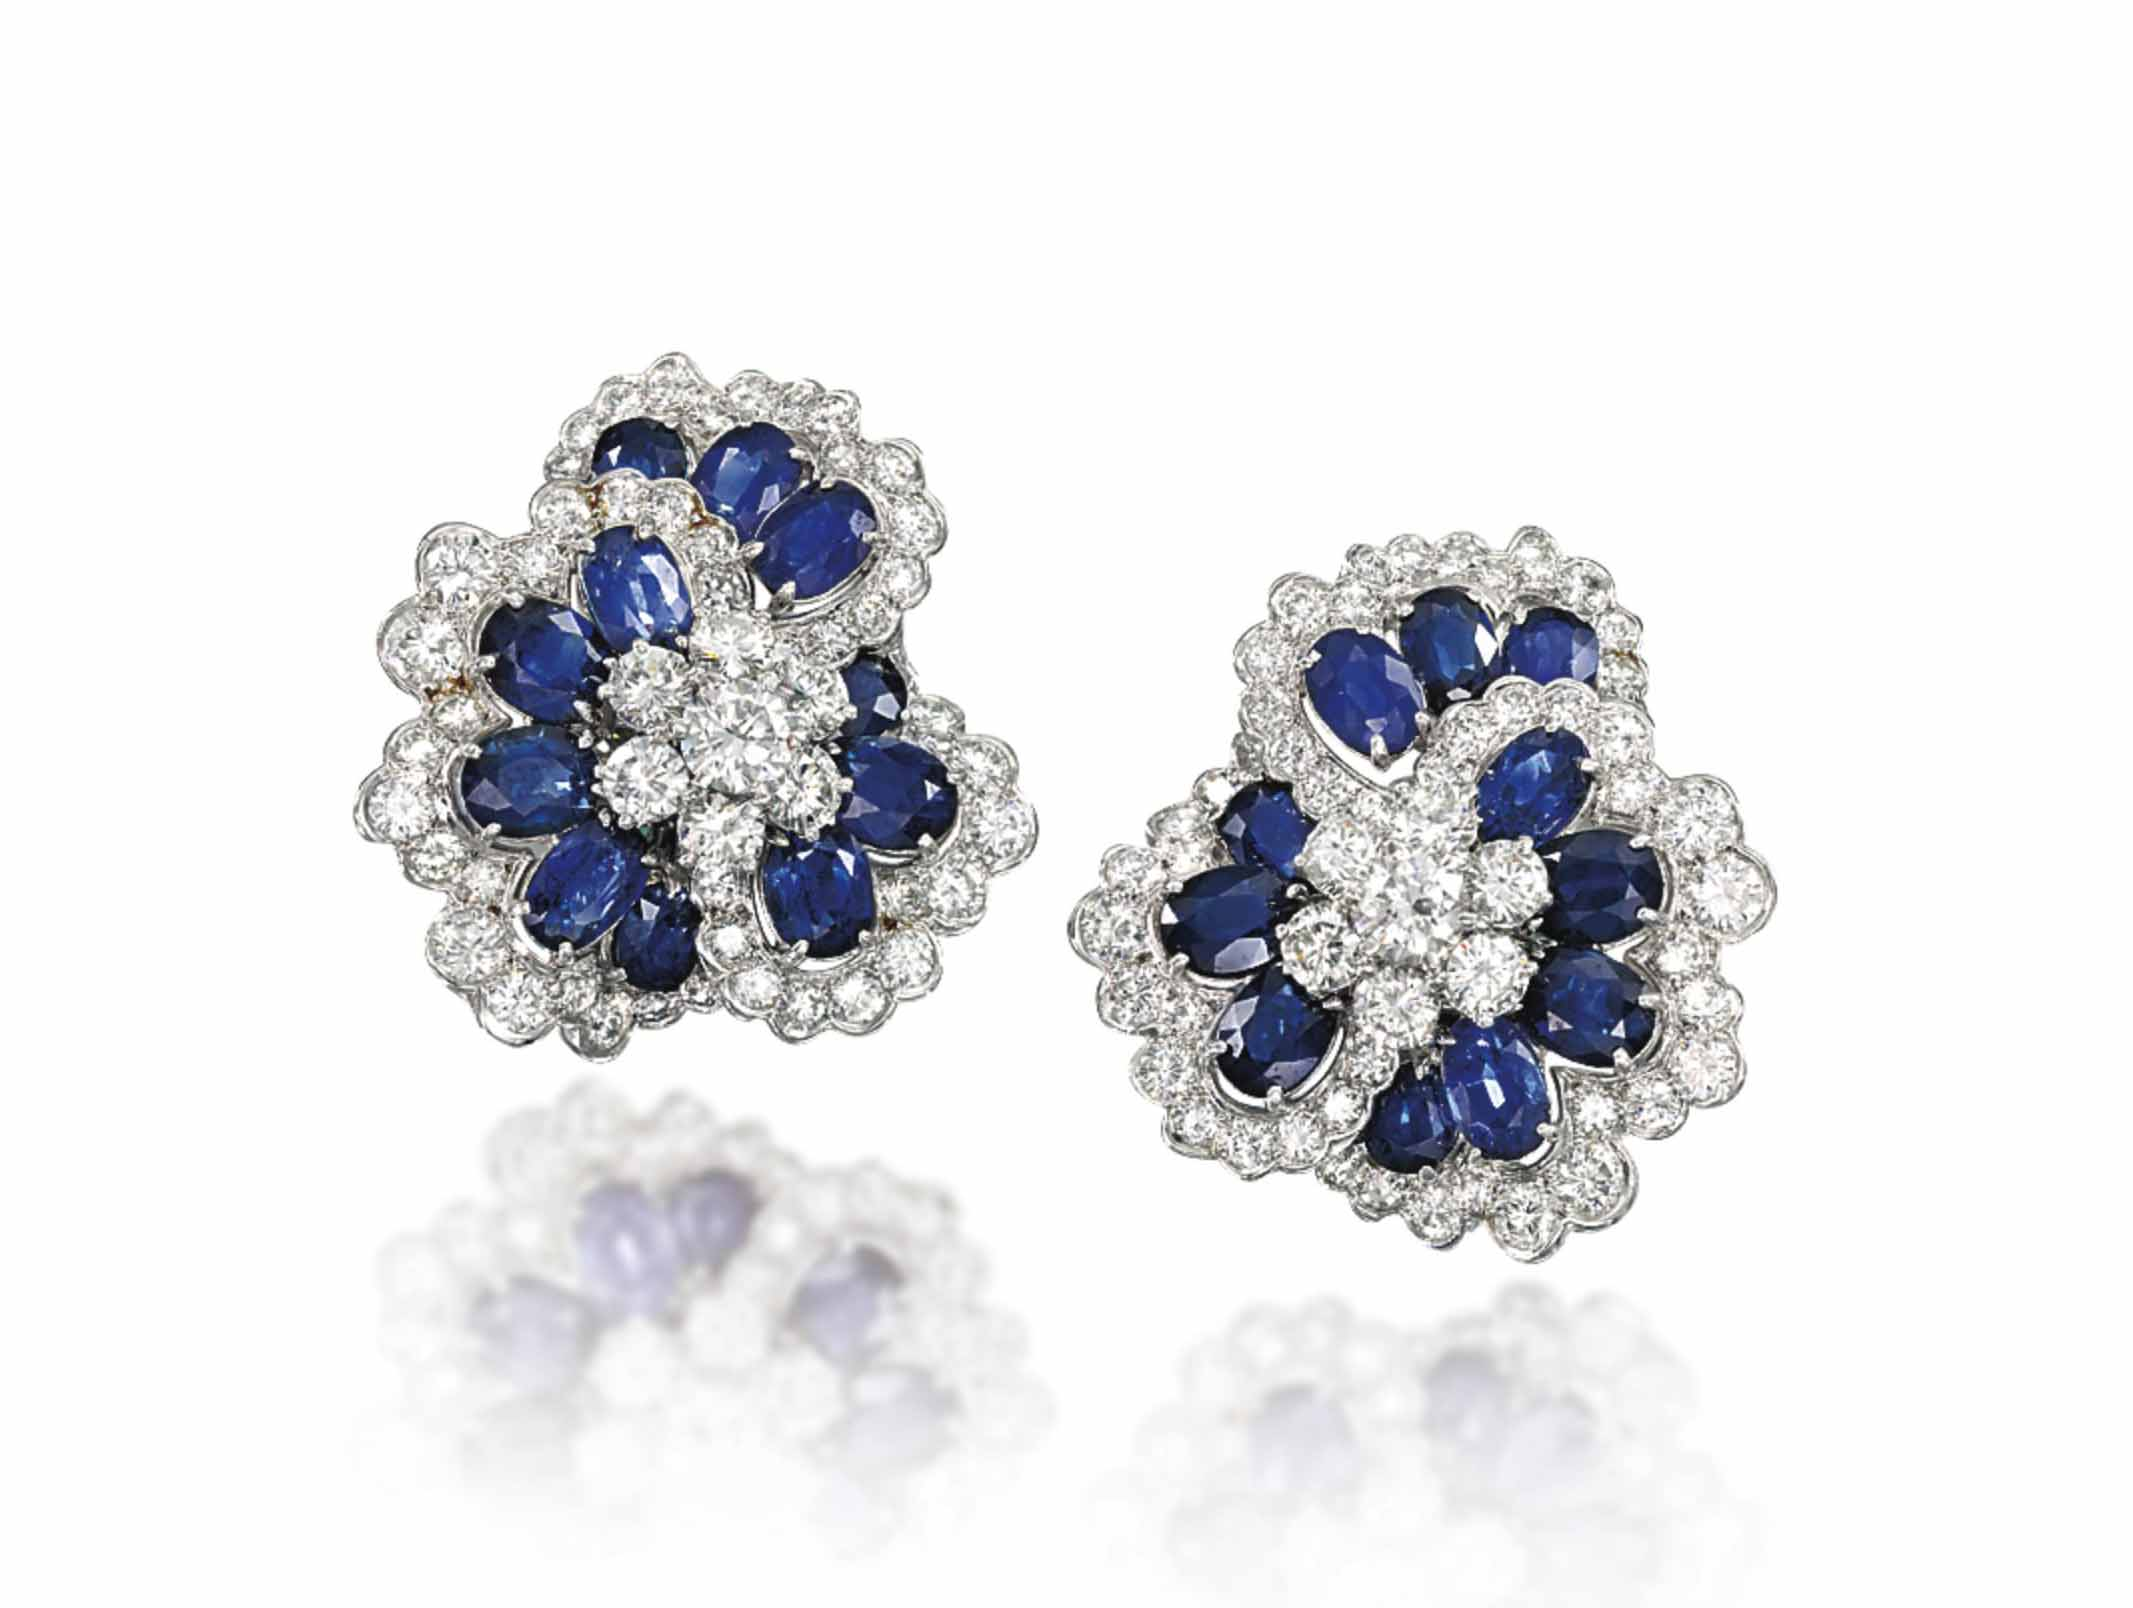 A PAIR OF SAPPHIRE AND DIAMOND EAR CLIPS, BY VOURAKIS